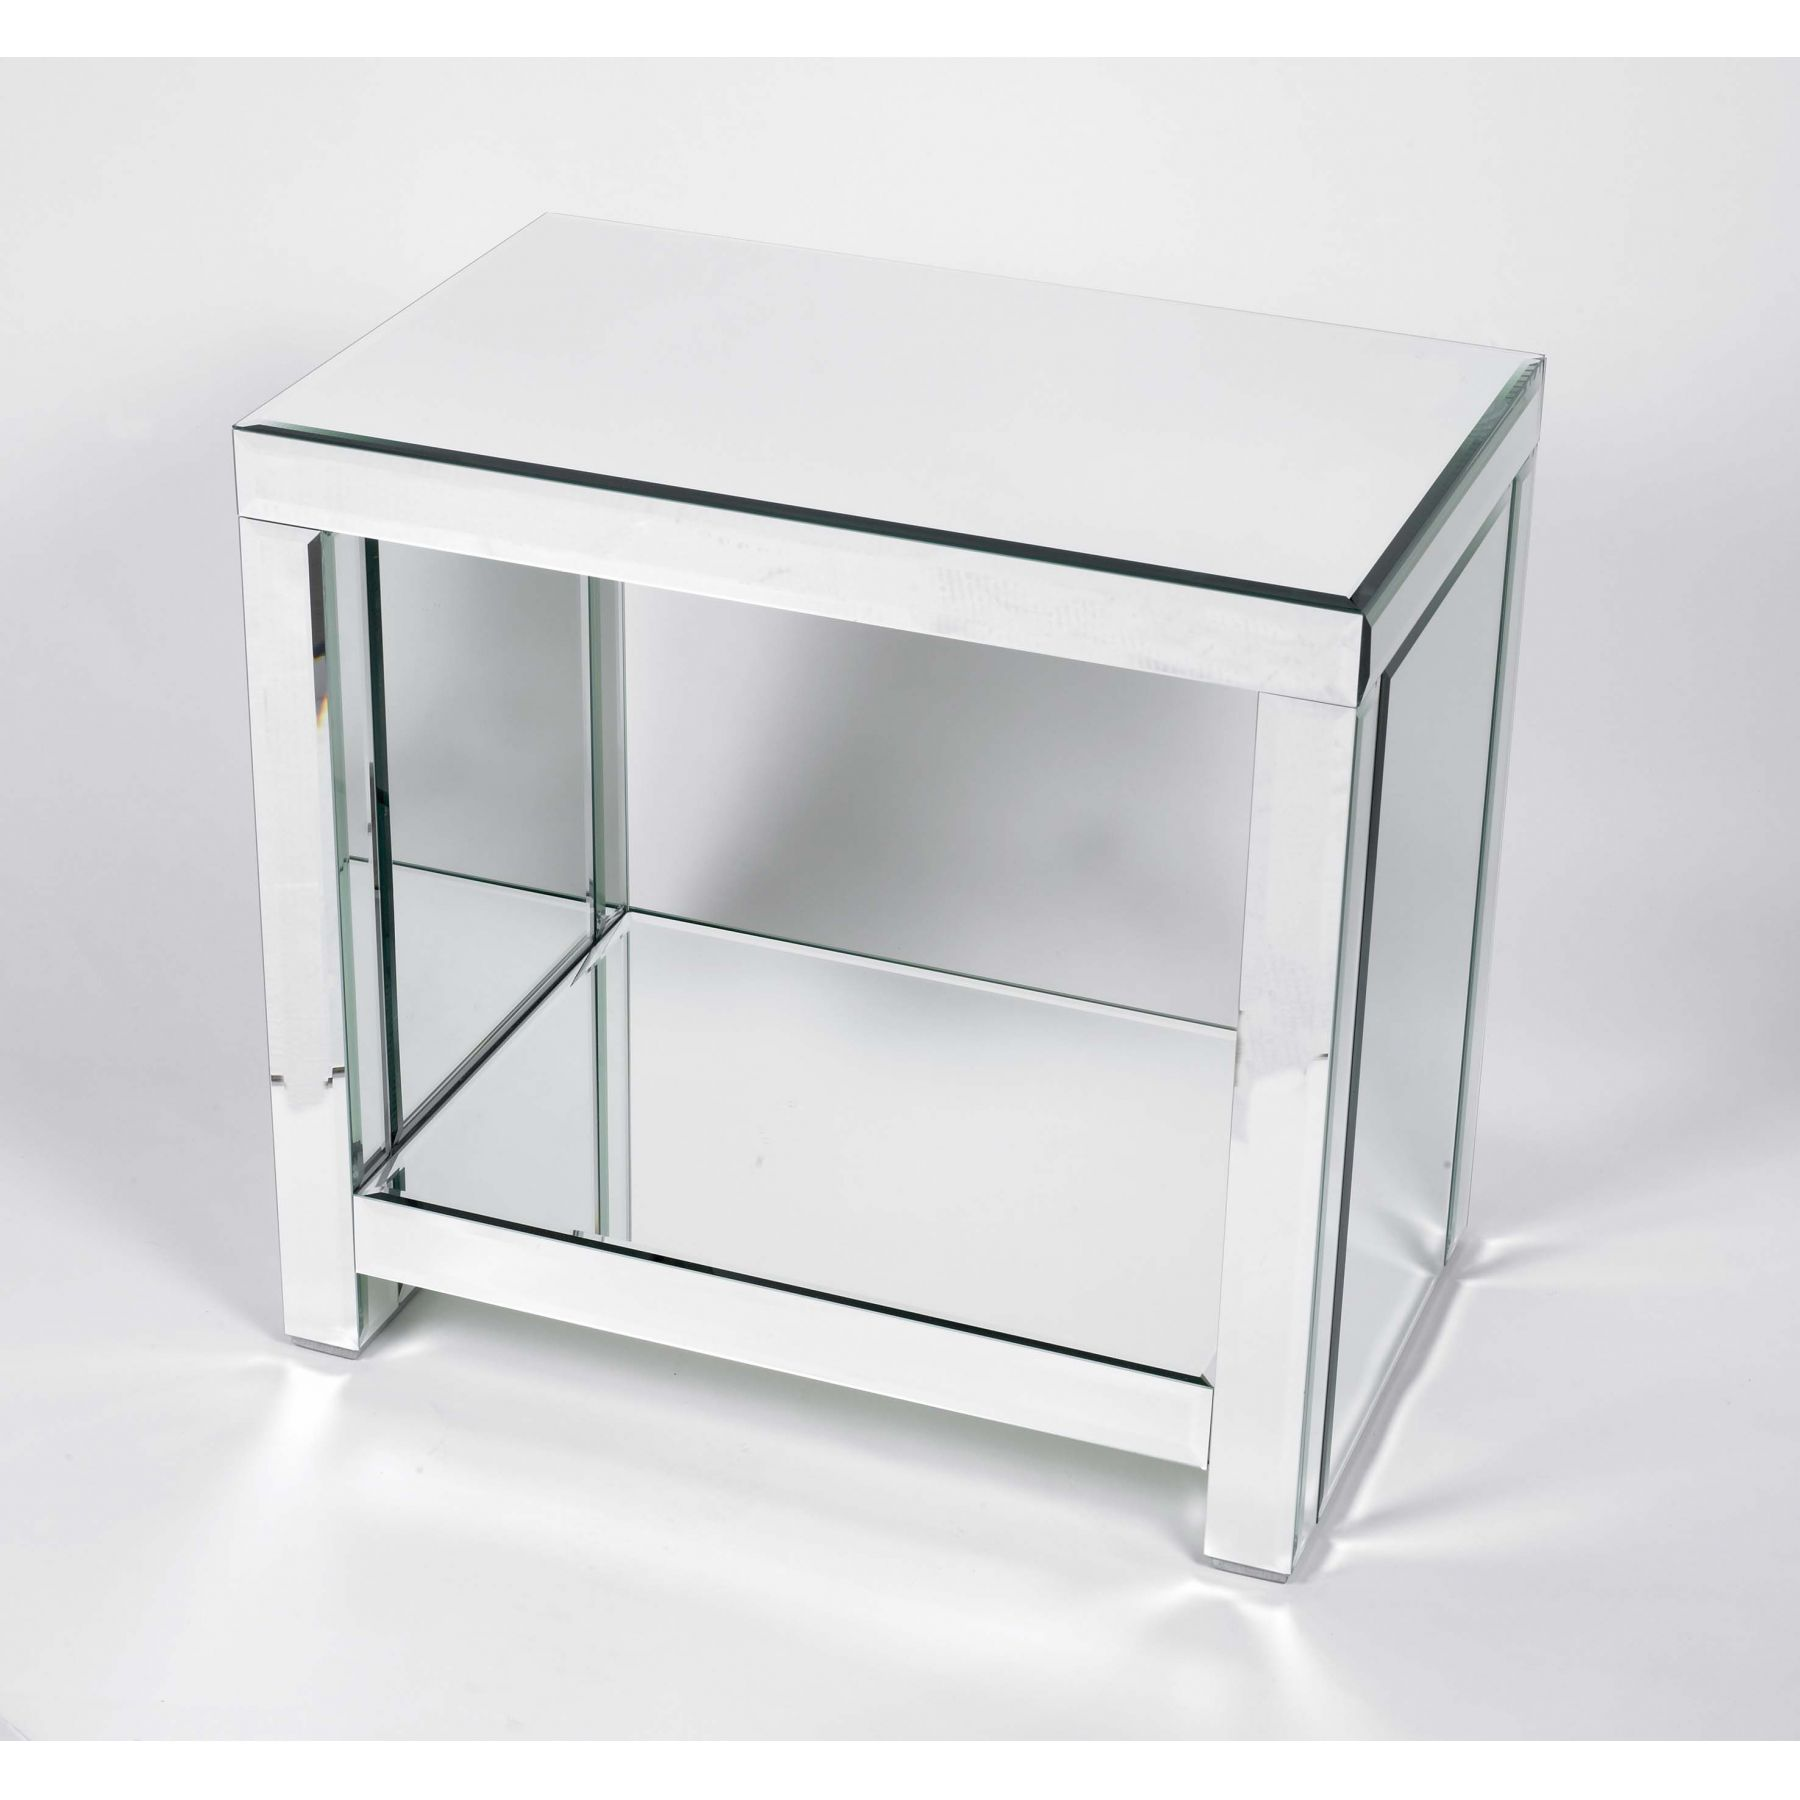 mirrored console table glass tables office and bedroom tops antique mirror low with drawers white sofa entry hall baskets small wood shelf end garden set accent mid century modern